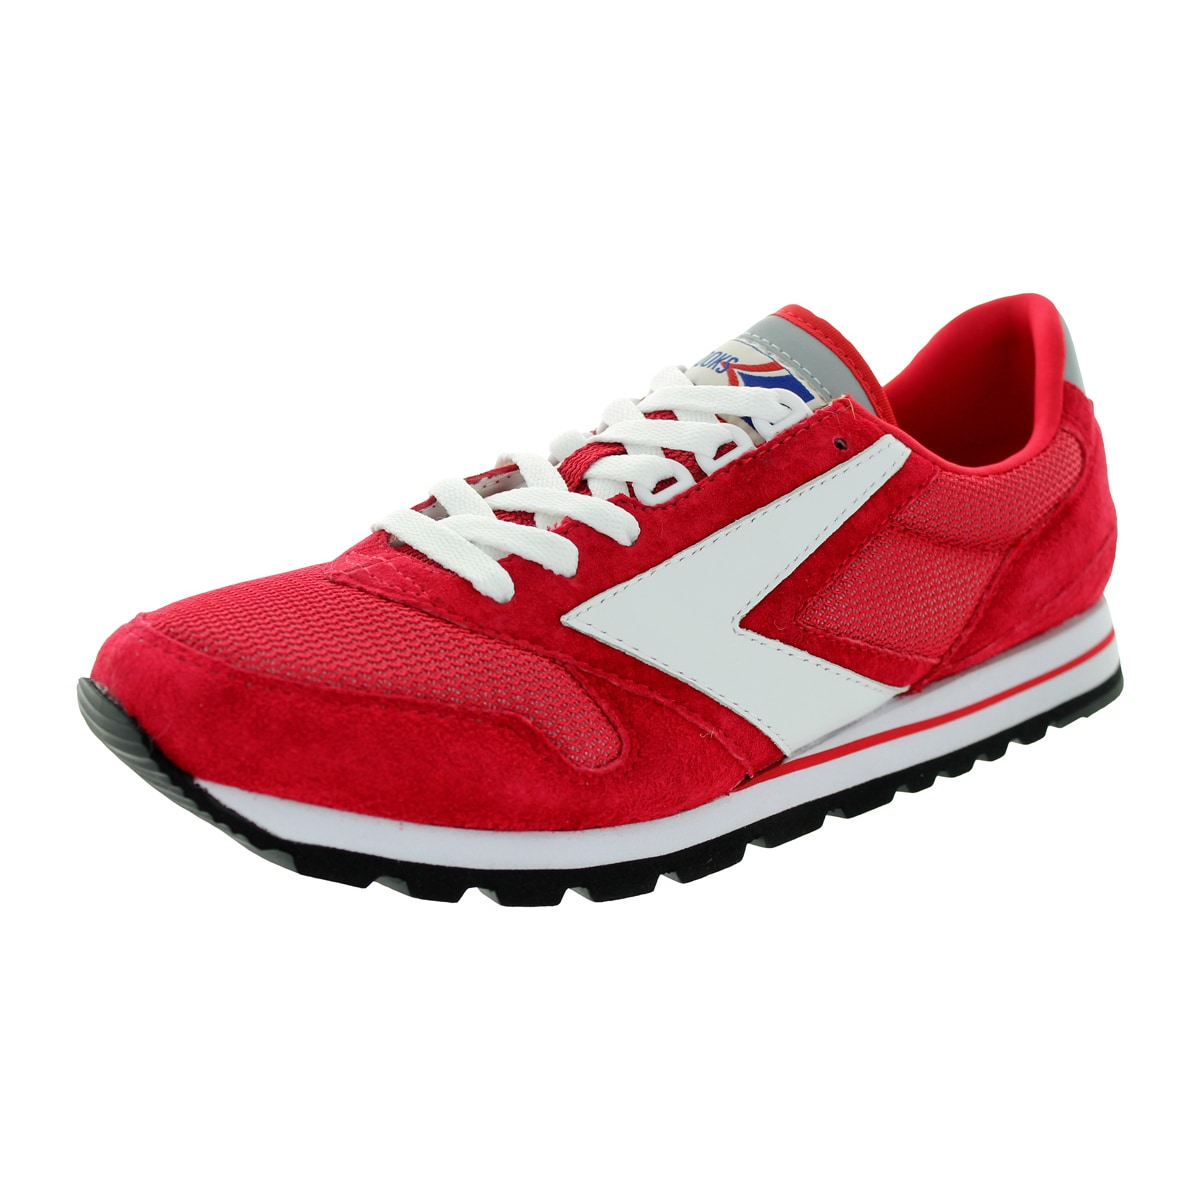 3c67bceea90be Shop Brooks Men s Chariot True Red White Running Shoe - Free Shipping Today  - Overstock - 12321097